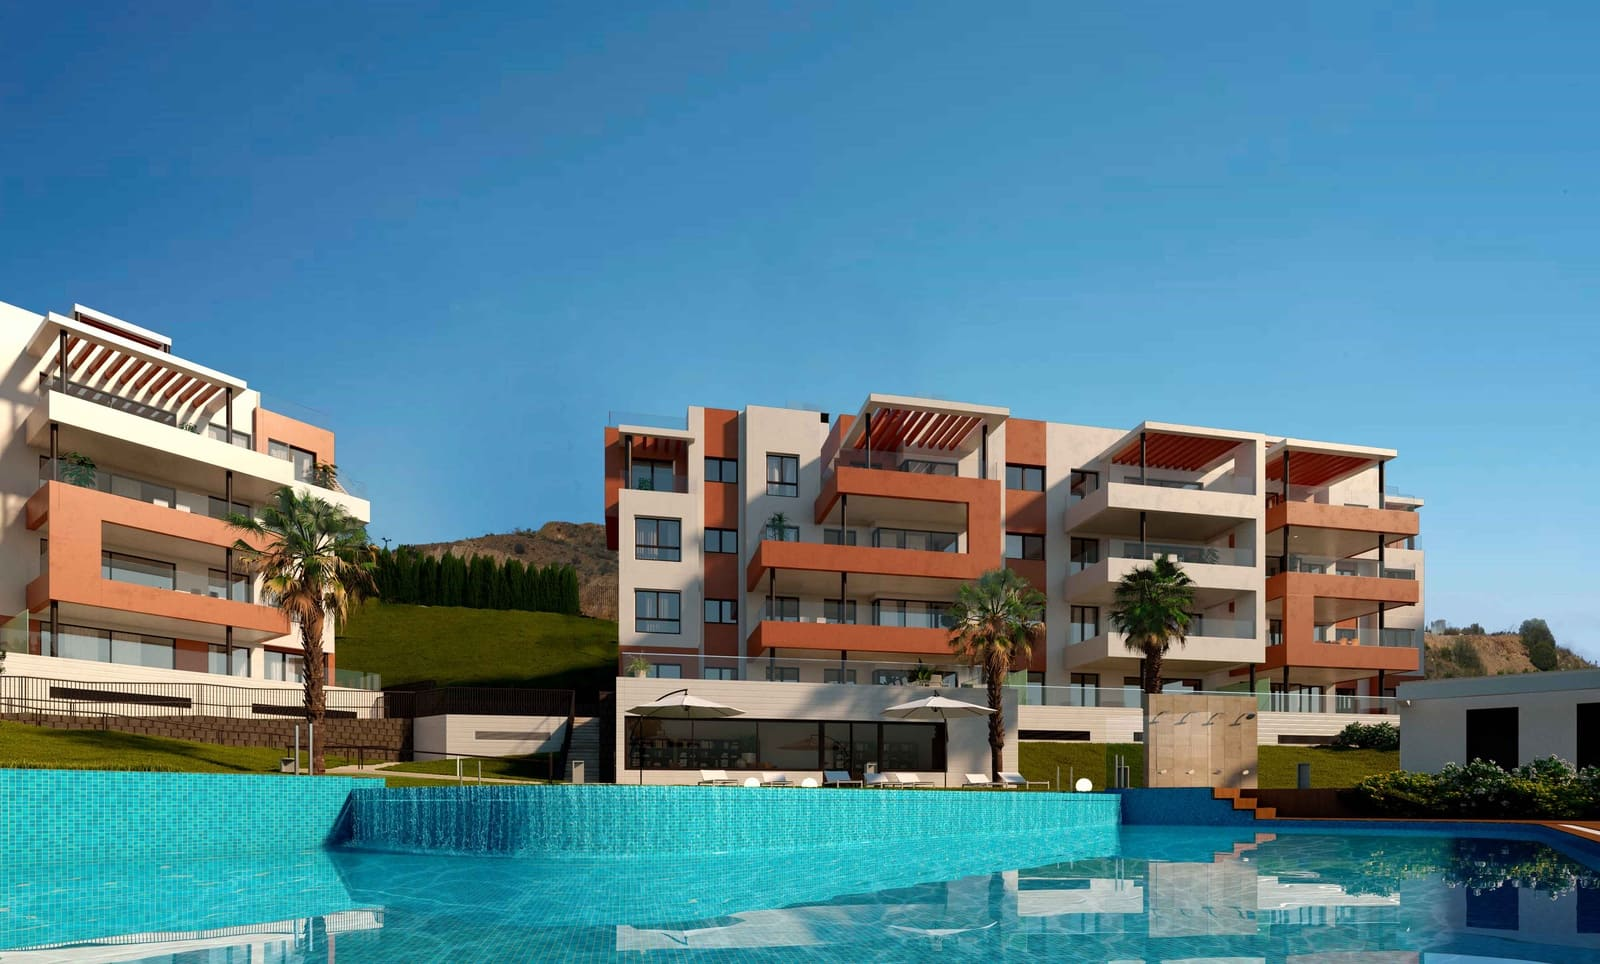 2 bedroom Apartment for sale in Fuengirola with pool garage - € 315,000 (Ref: 4863265)